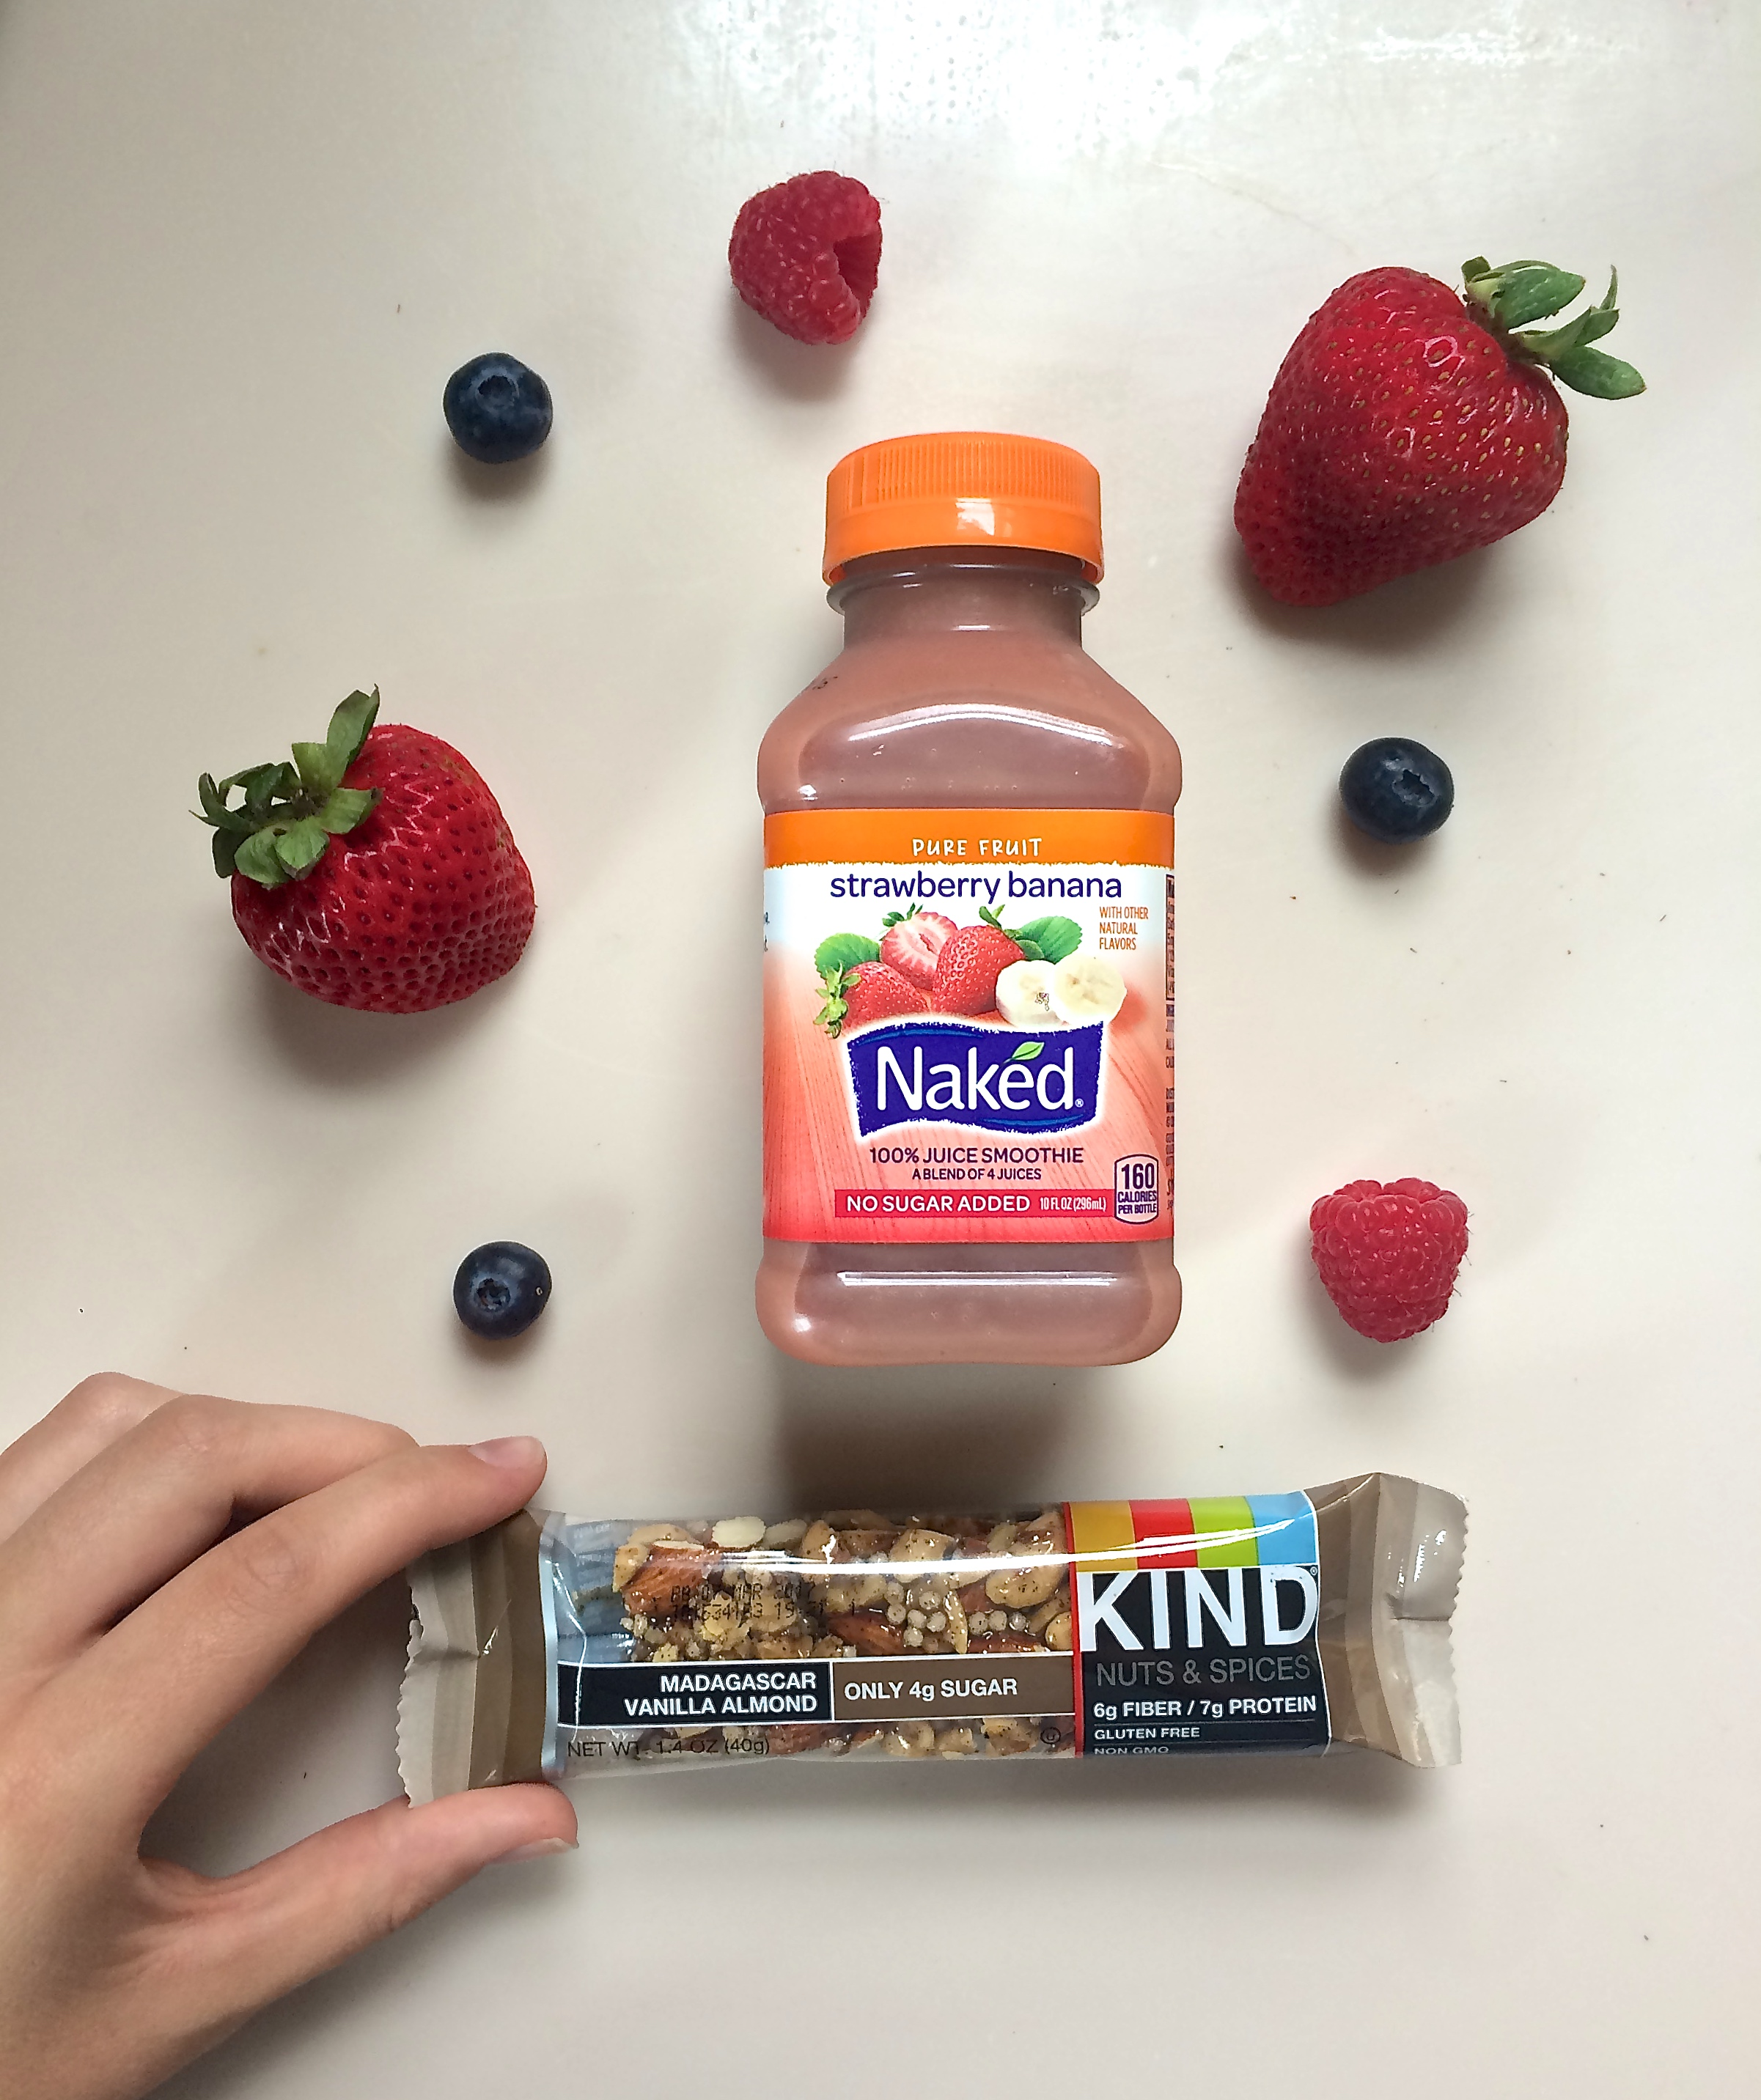 I'v been going on early morning runs recently, so having NAKED juice stocked in the refrigerator has been very convenient for an on-the-go breakfast. Additionally, these KIND bars come in so many different flavors which I love to stash into my bag for an after workout snack.